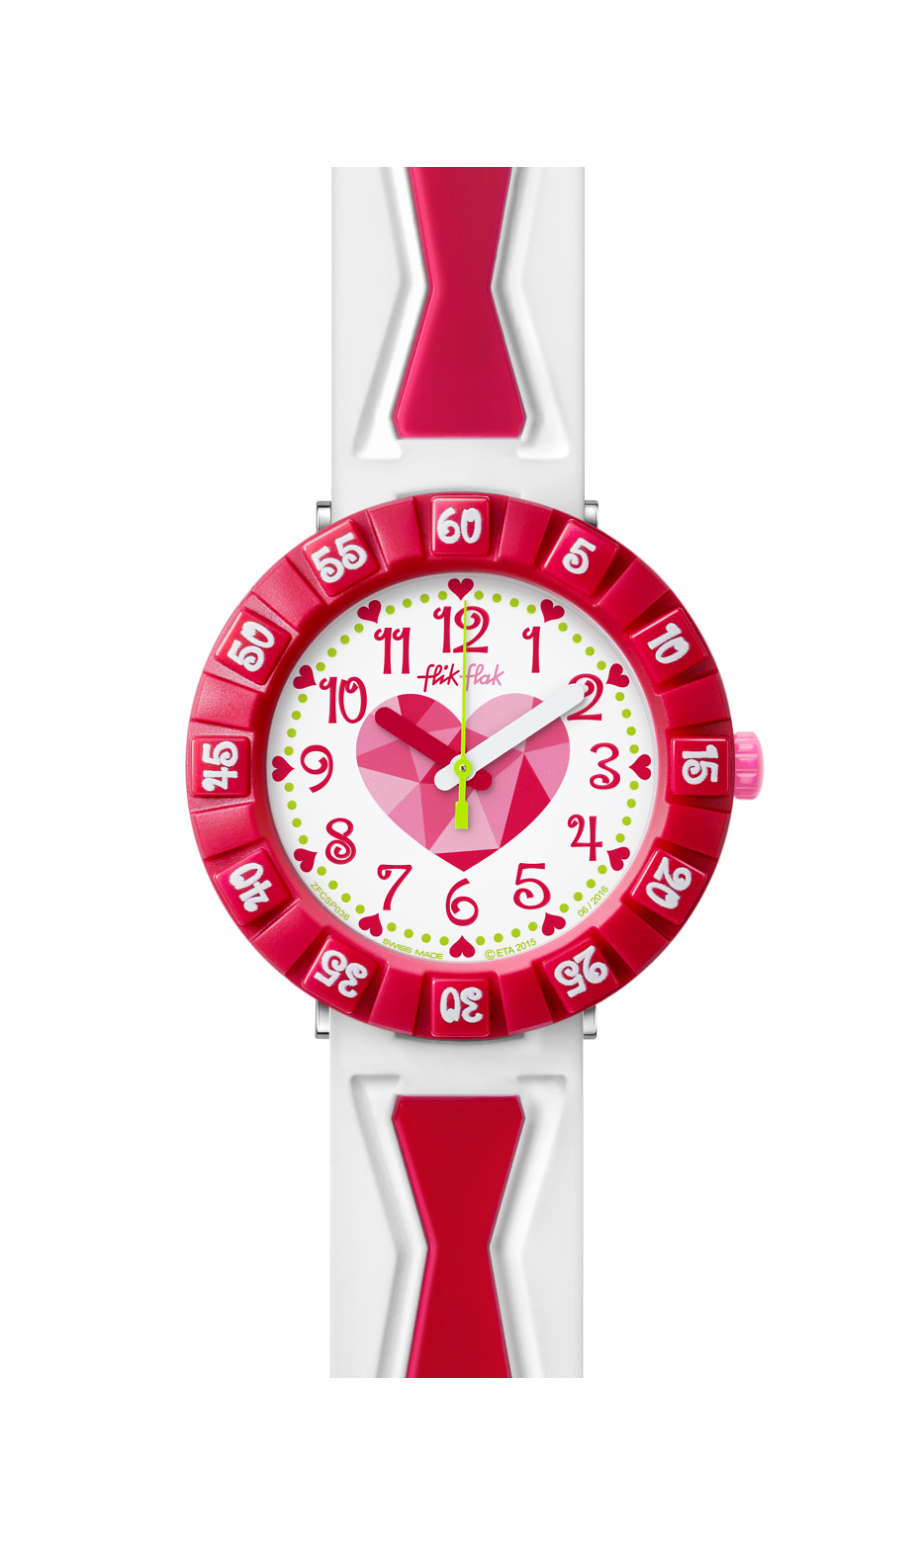 Swatch - GET IT IN PINK - 1